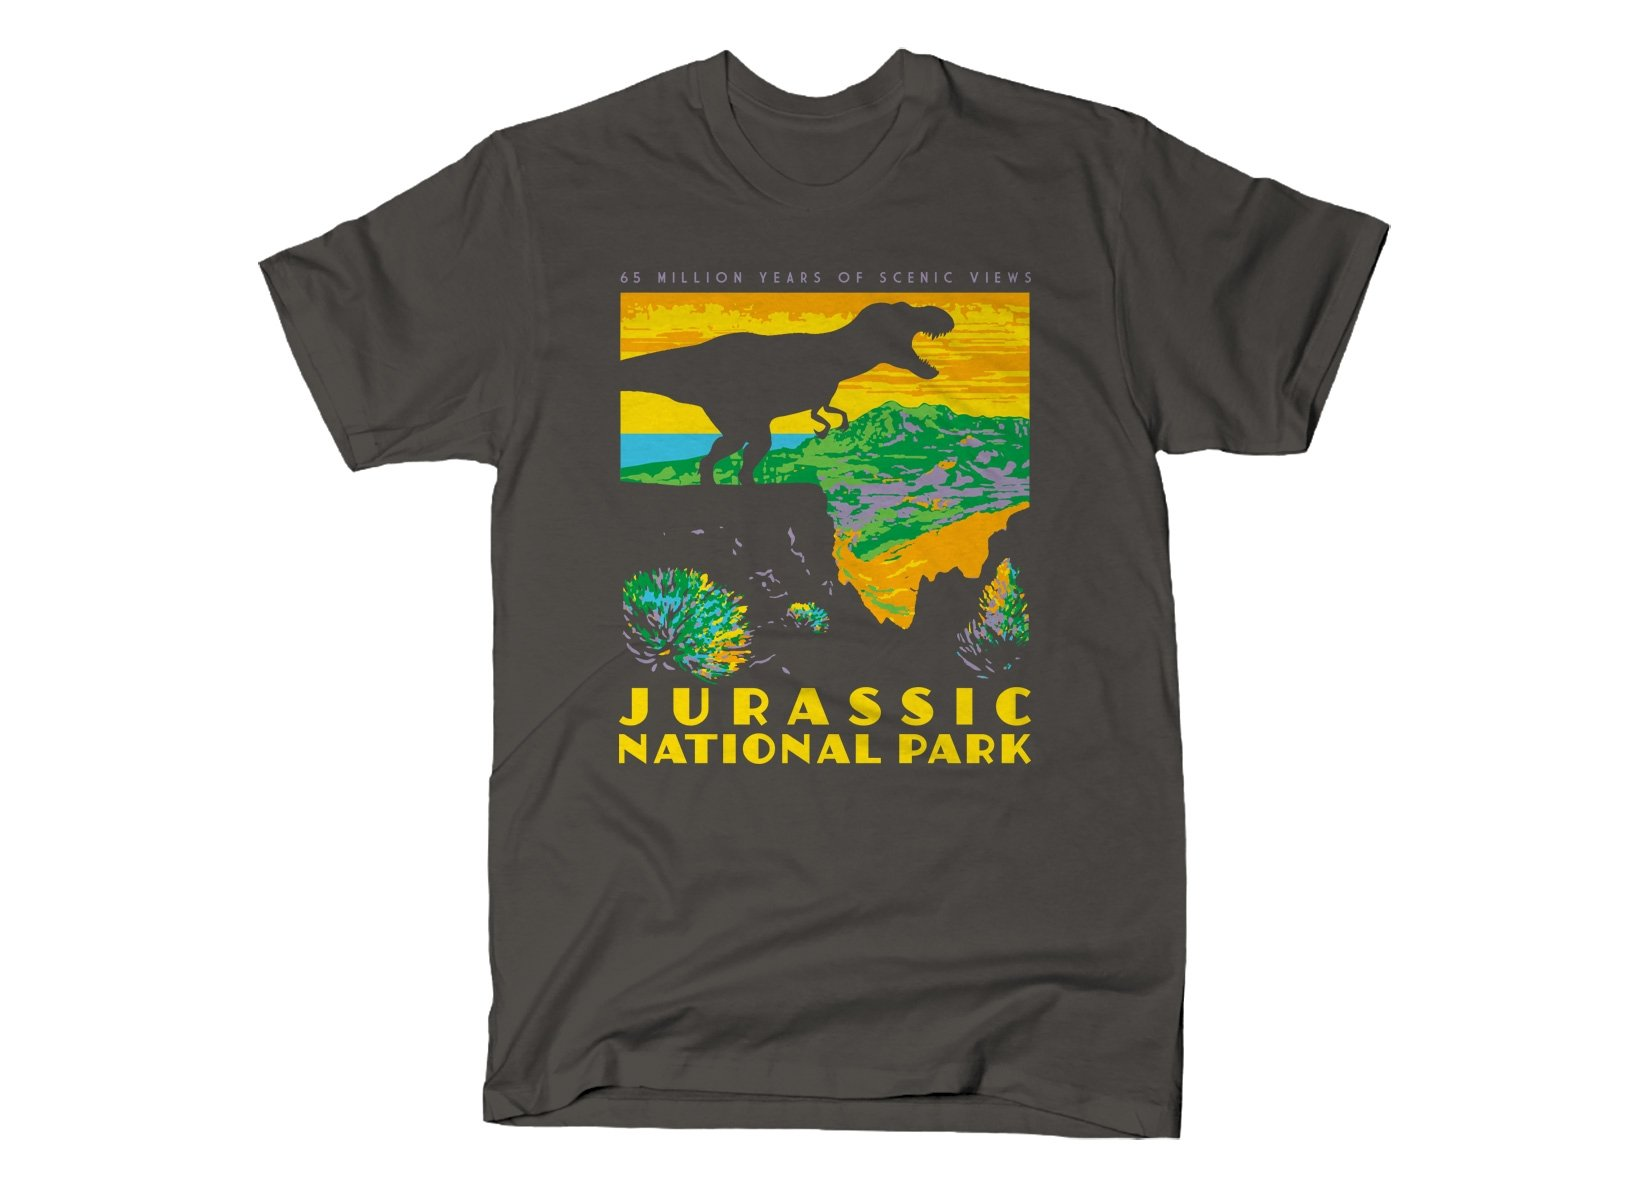 Jurassic National Park on Mens T-Shirt